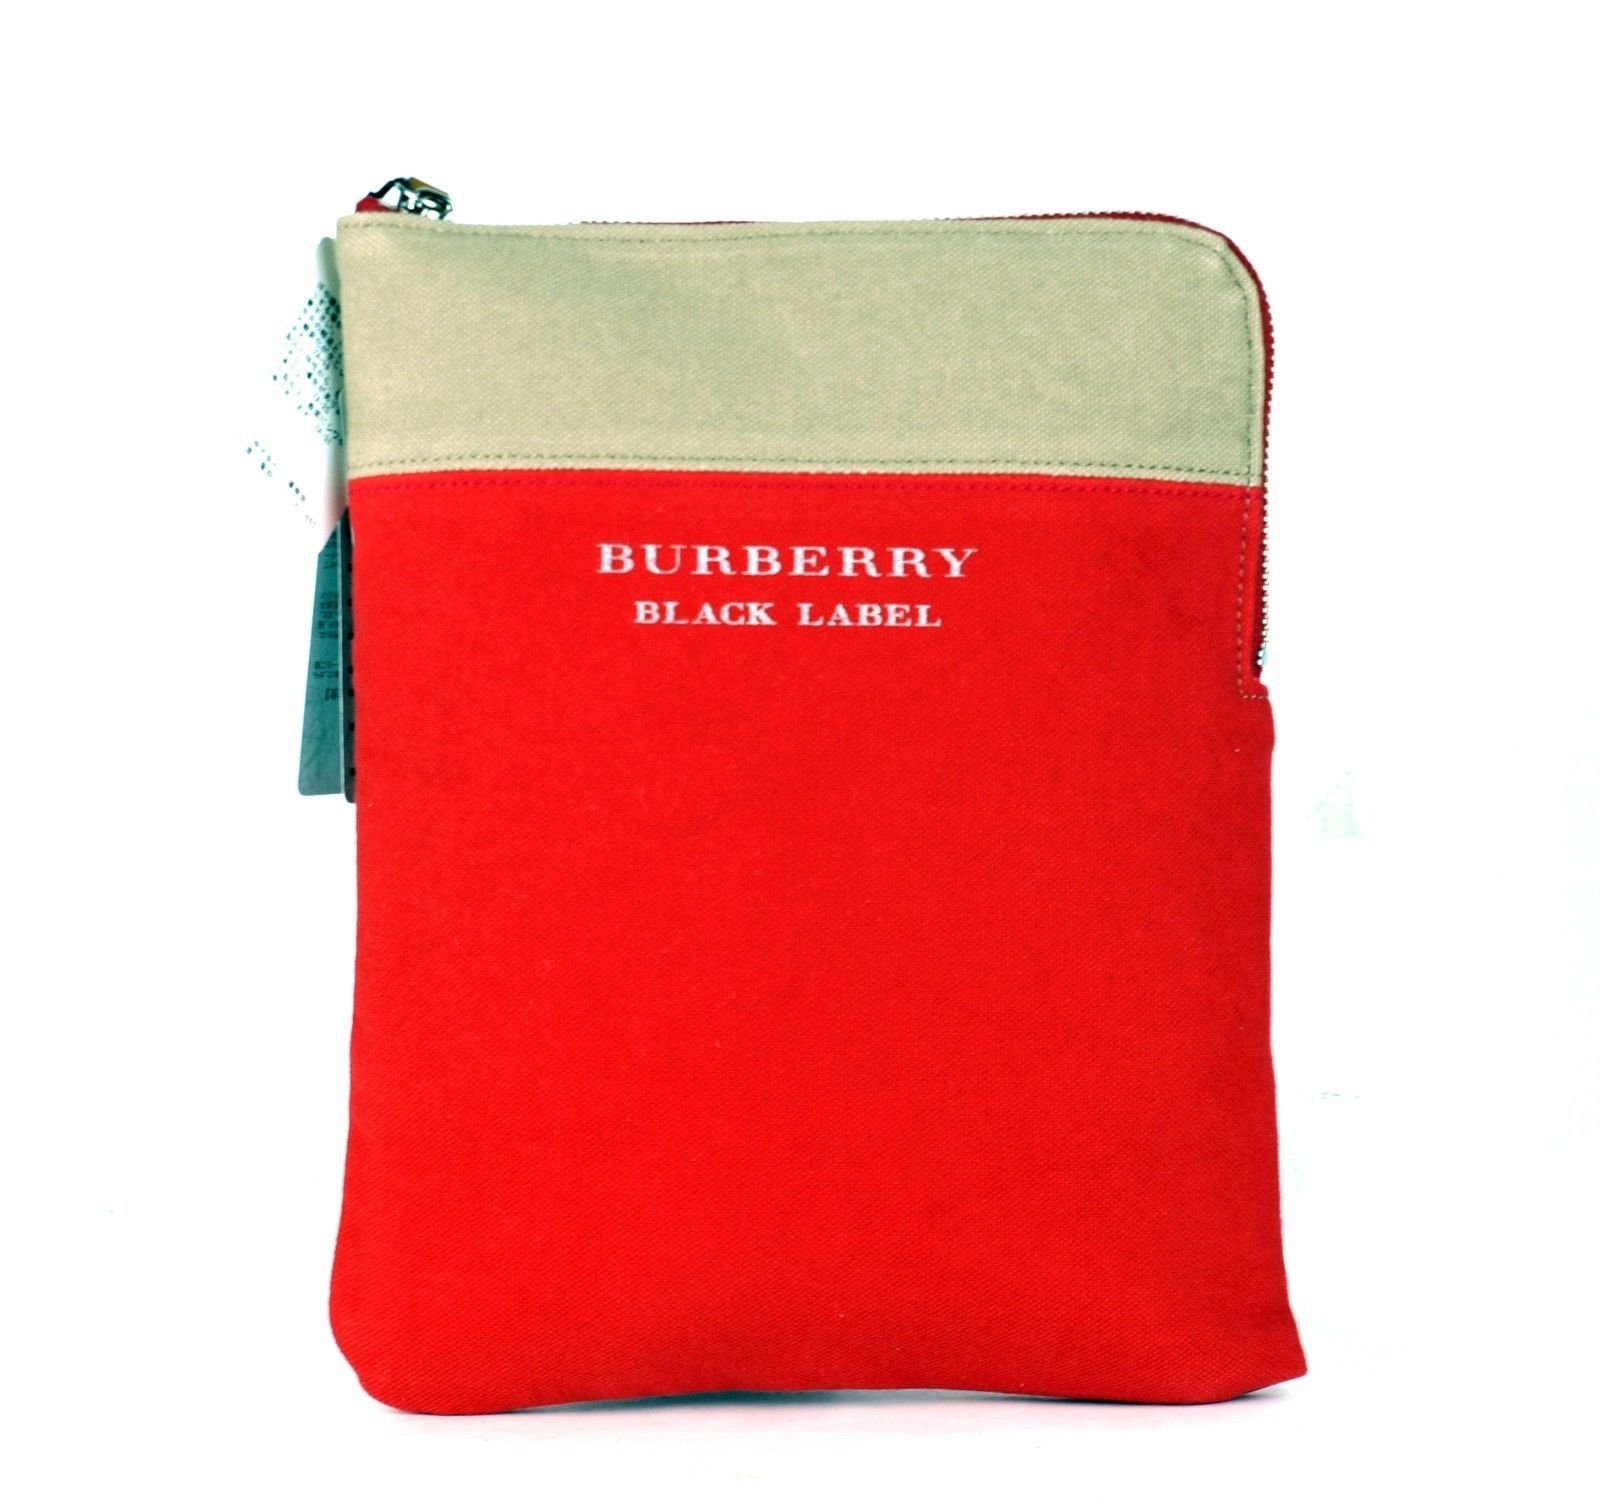 Auth Burberry London Black Label Red Cotton Canvas Clutch Hand Pouch Bag Unused - $127.71